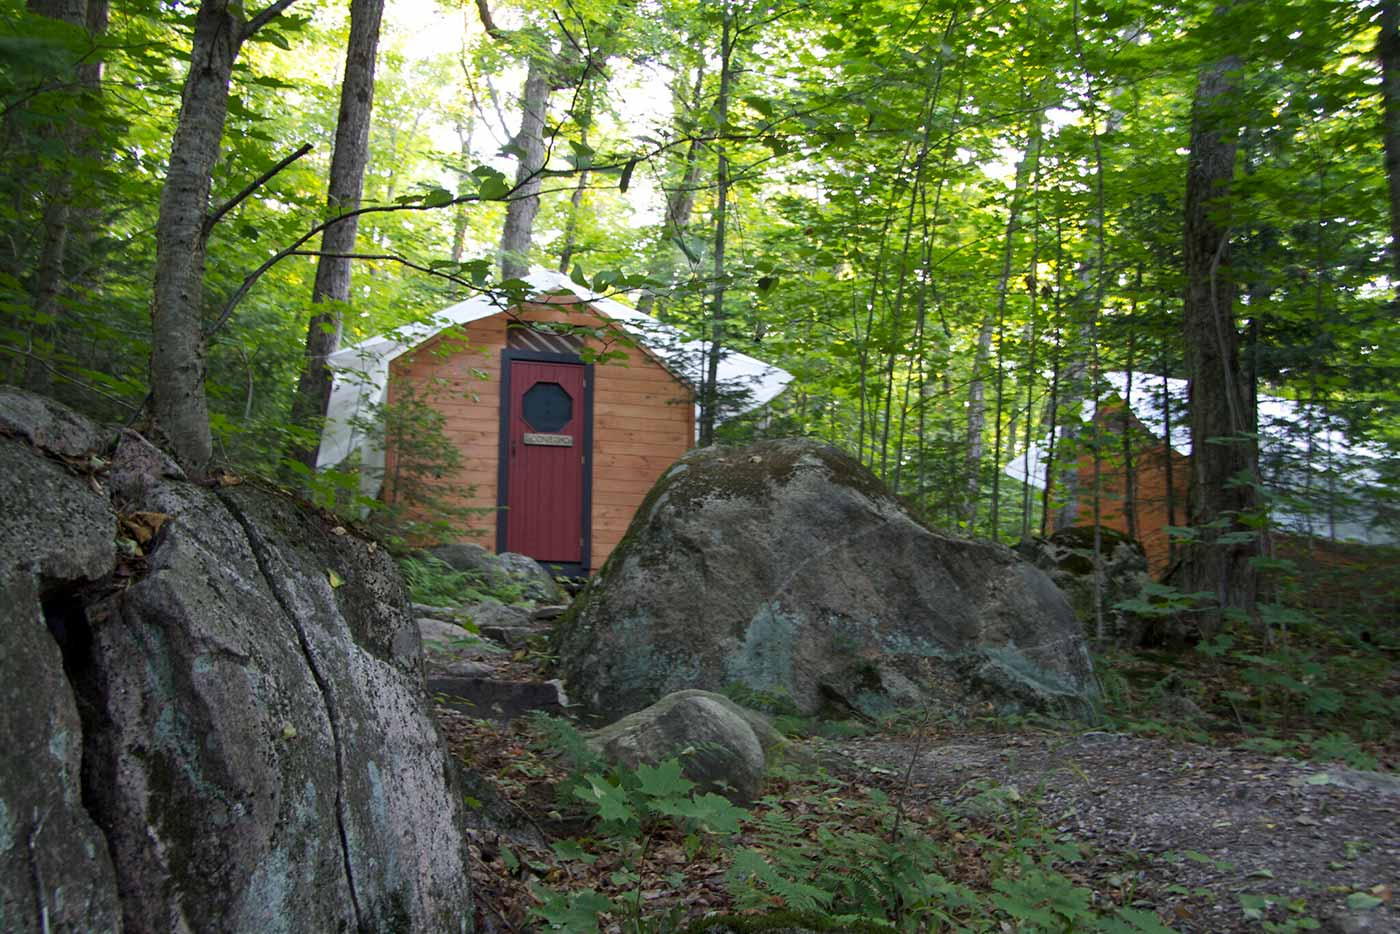 Cabin sitting in the middle of a forest